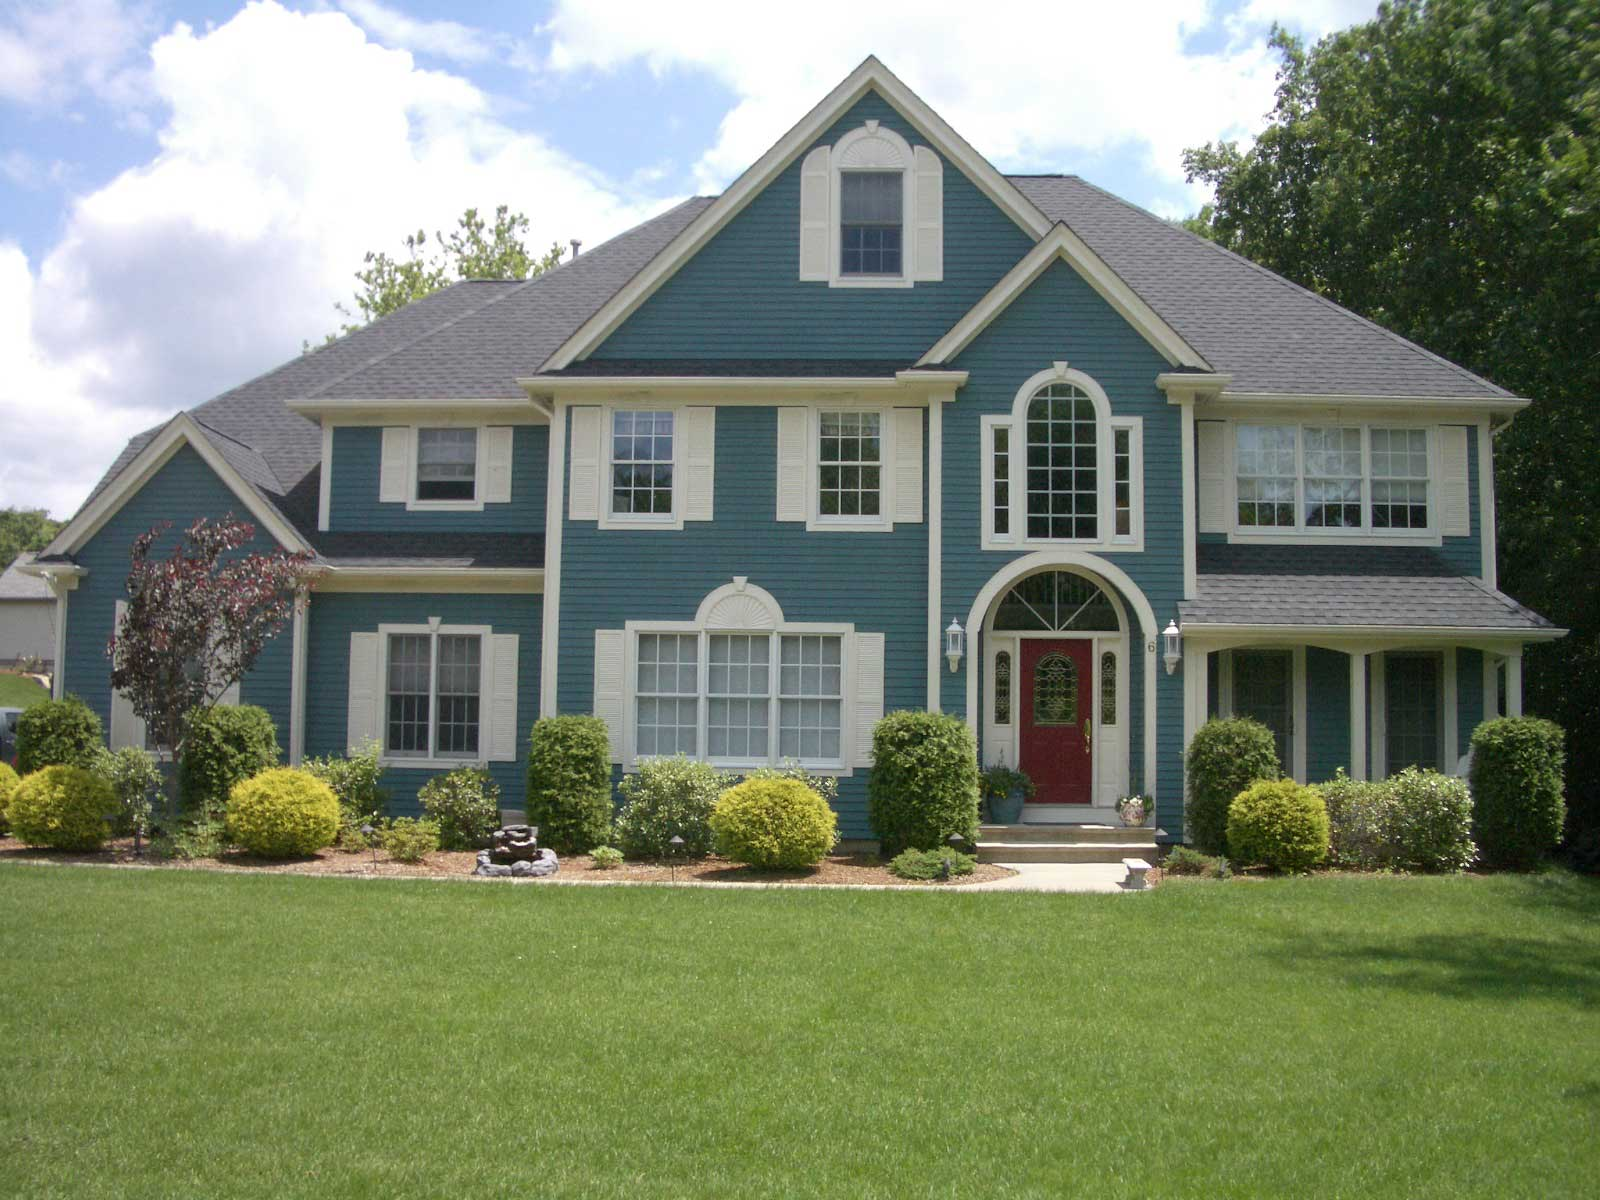 Most Popular Exterior House Colors - HomesFeed on House Painting Ideas  id=19872